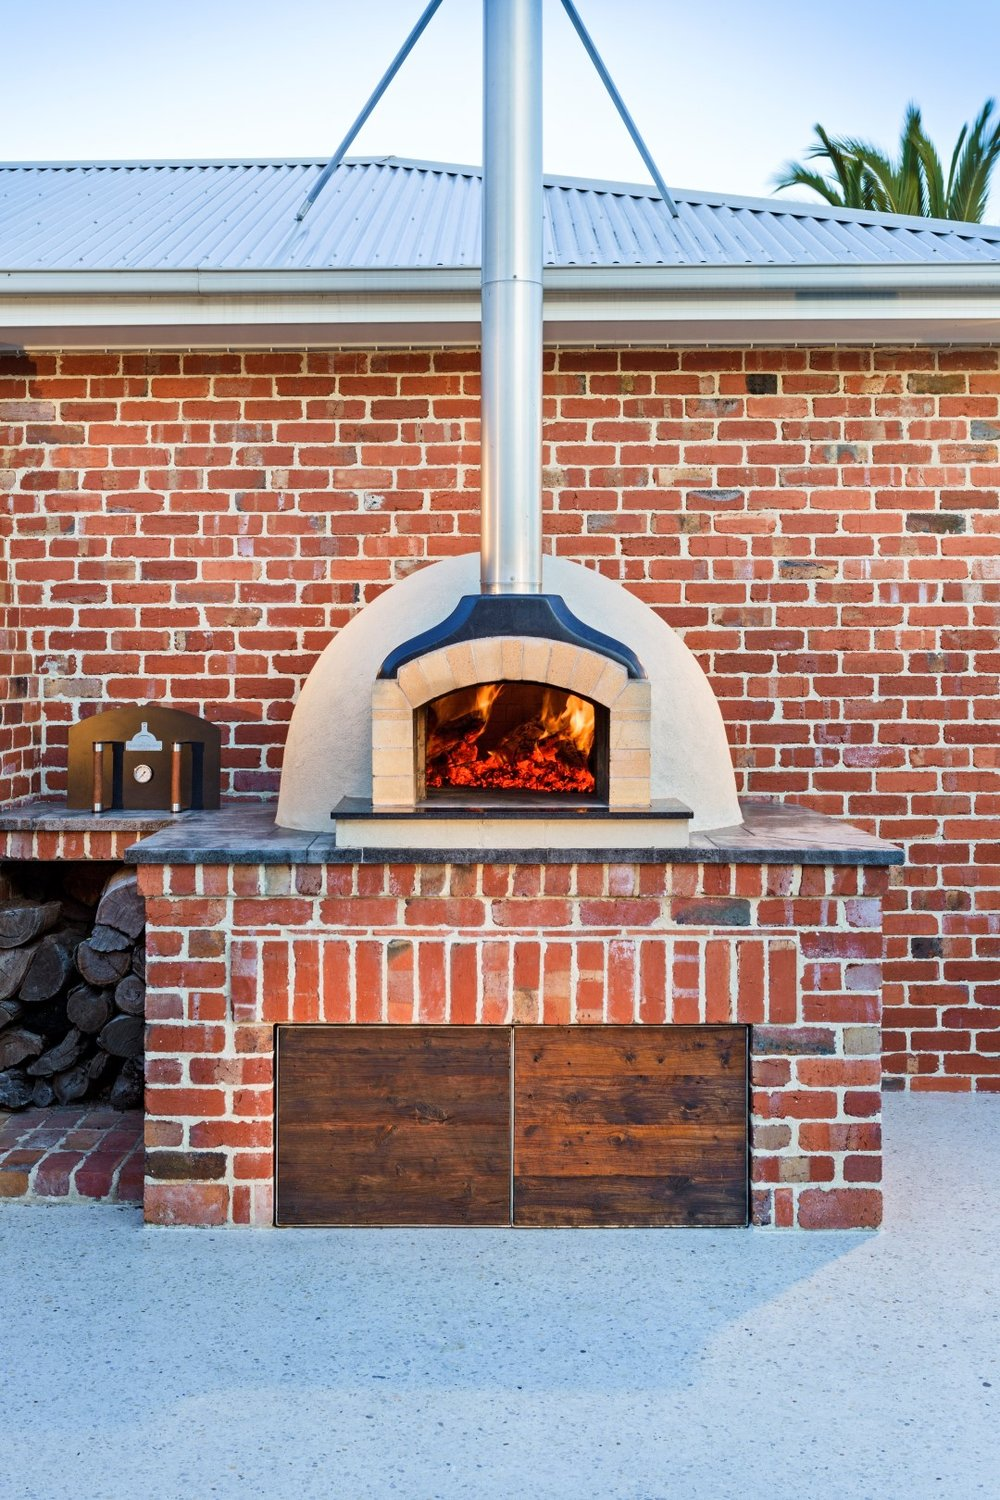 D105 Wood Fired Oven - Alan B - 1